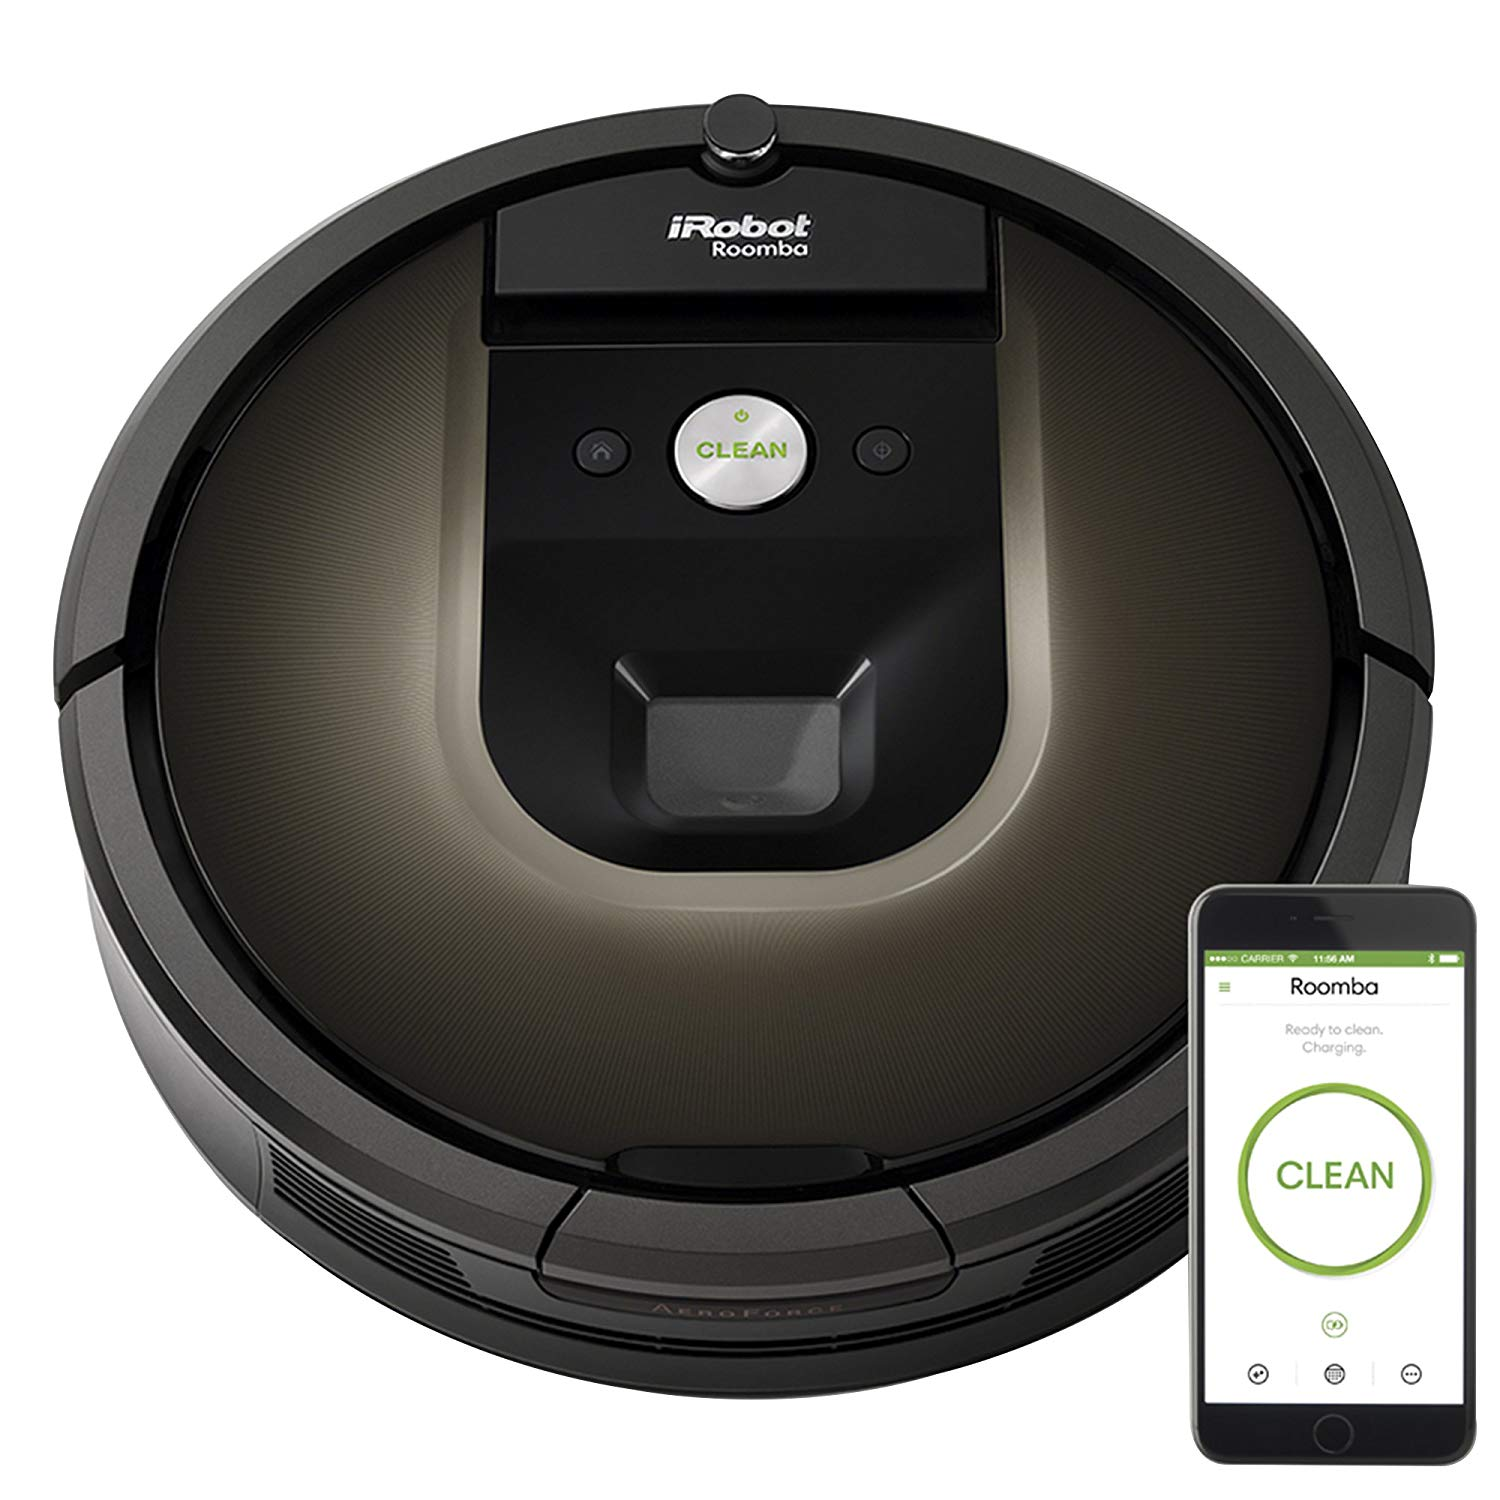 Best Robot Vacuums for All Floor Types